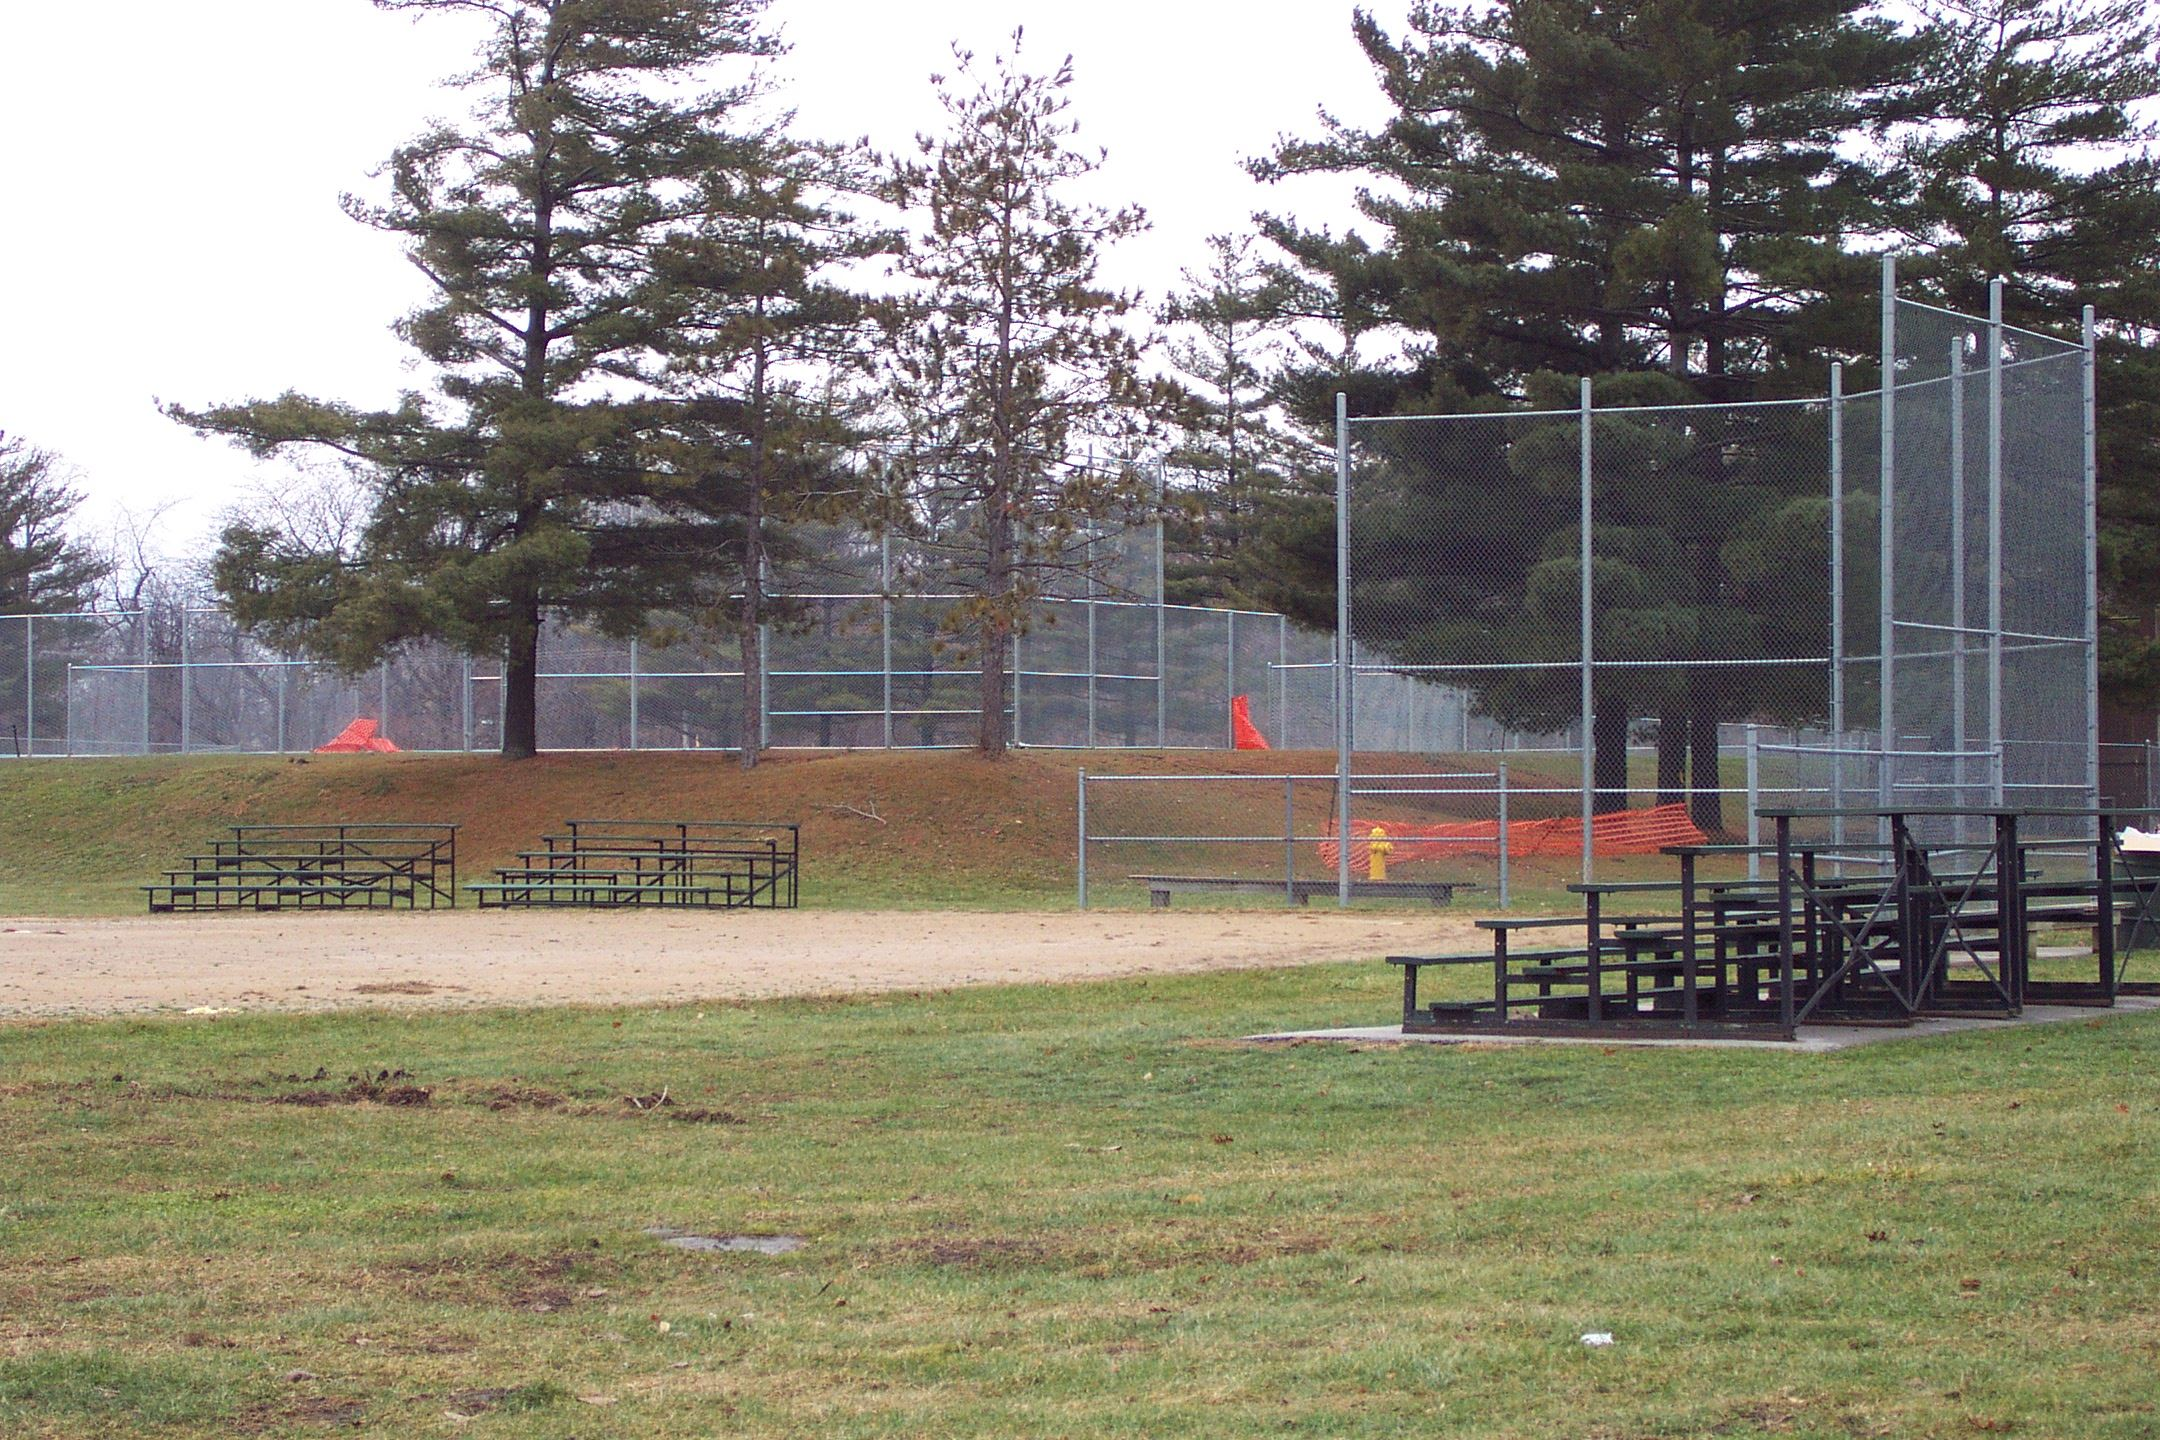 Baseball diamond and bleachers